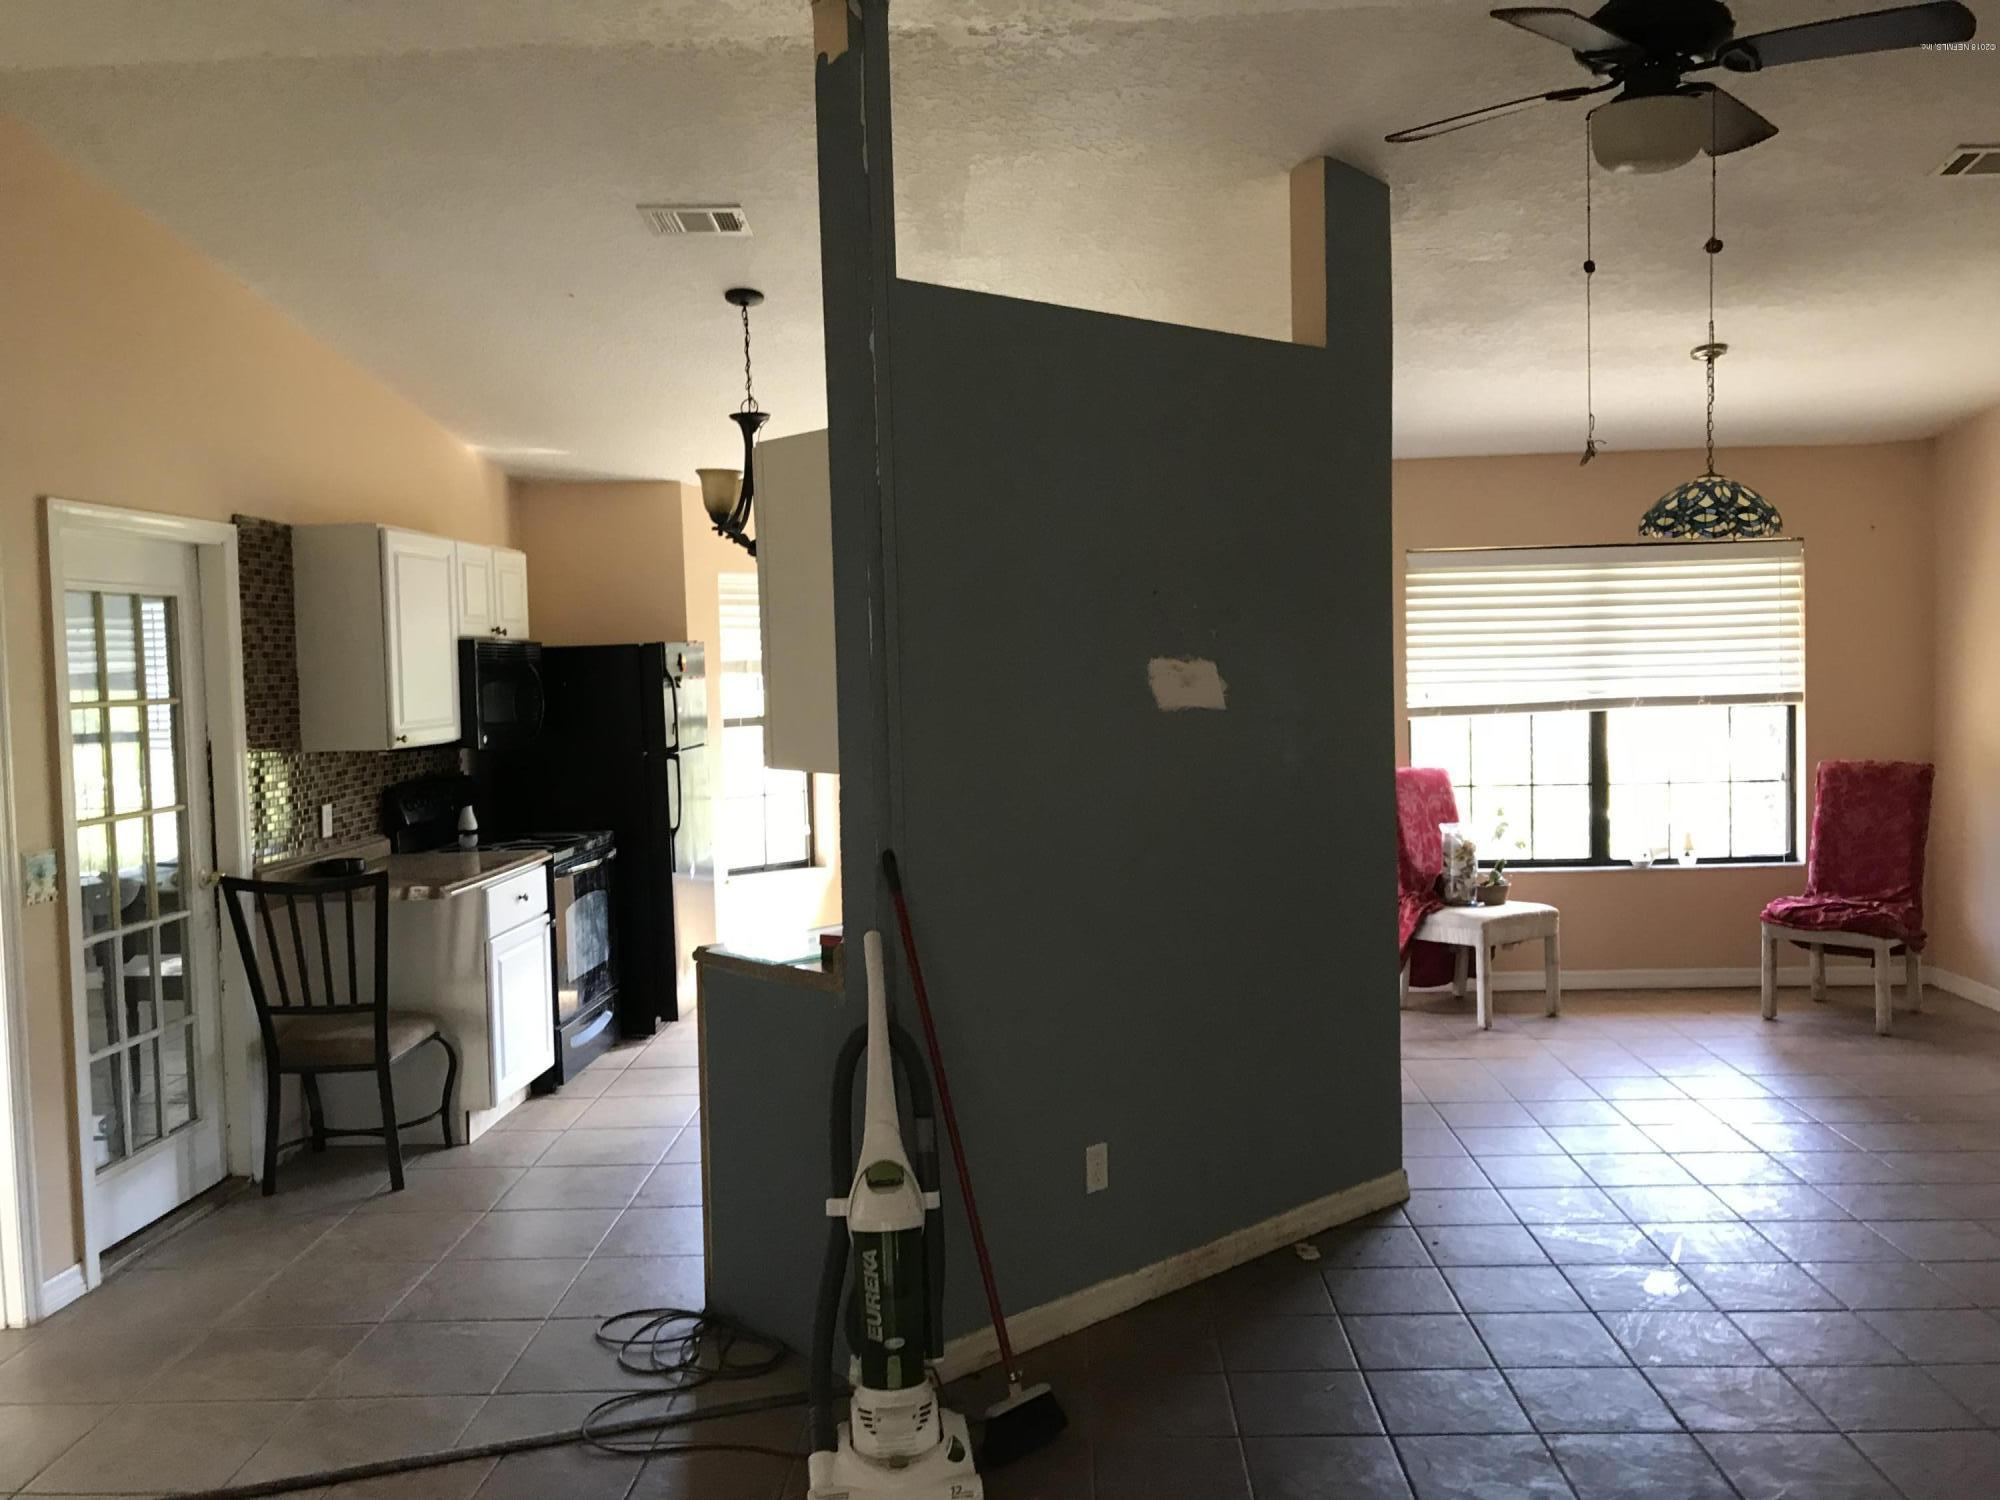 4837 WINTON, ST AUGUSTINE, FLORIDA 32086, 2 Bedrooms Bedrooms, ,2 BathroomsBathrooms,Residential - single family,For sale,WINTON,964798